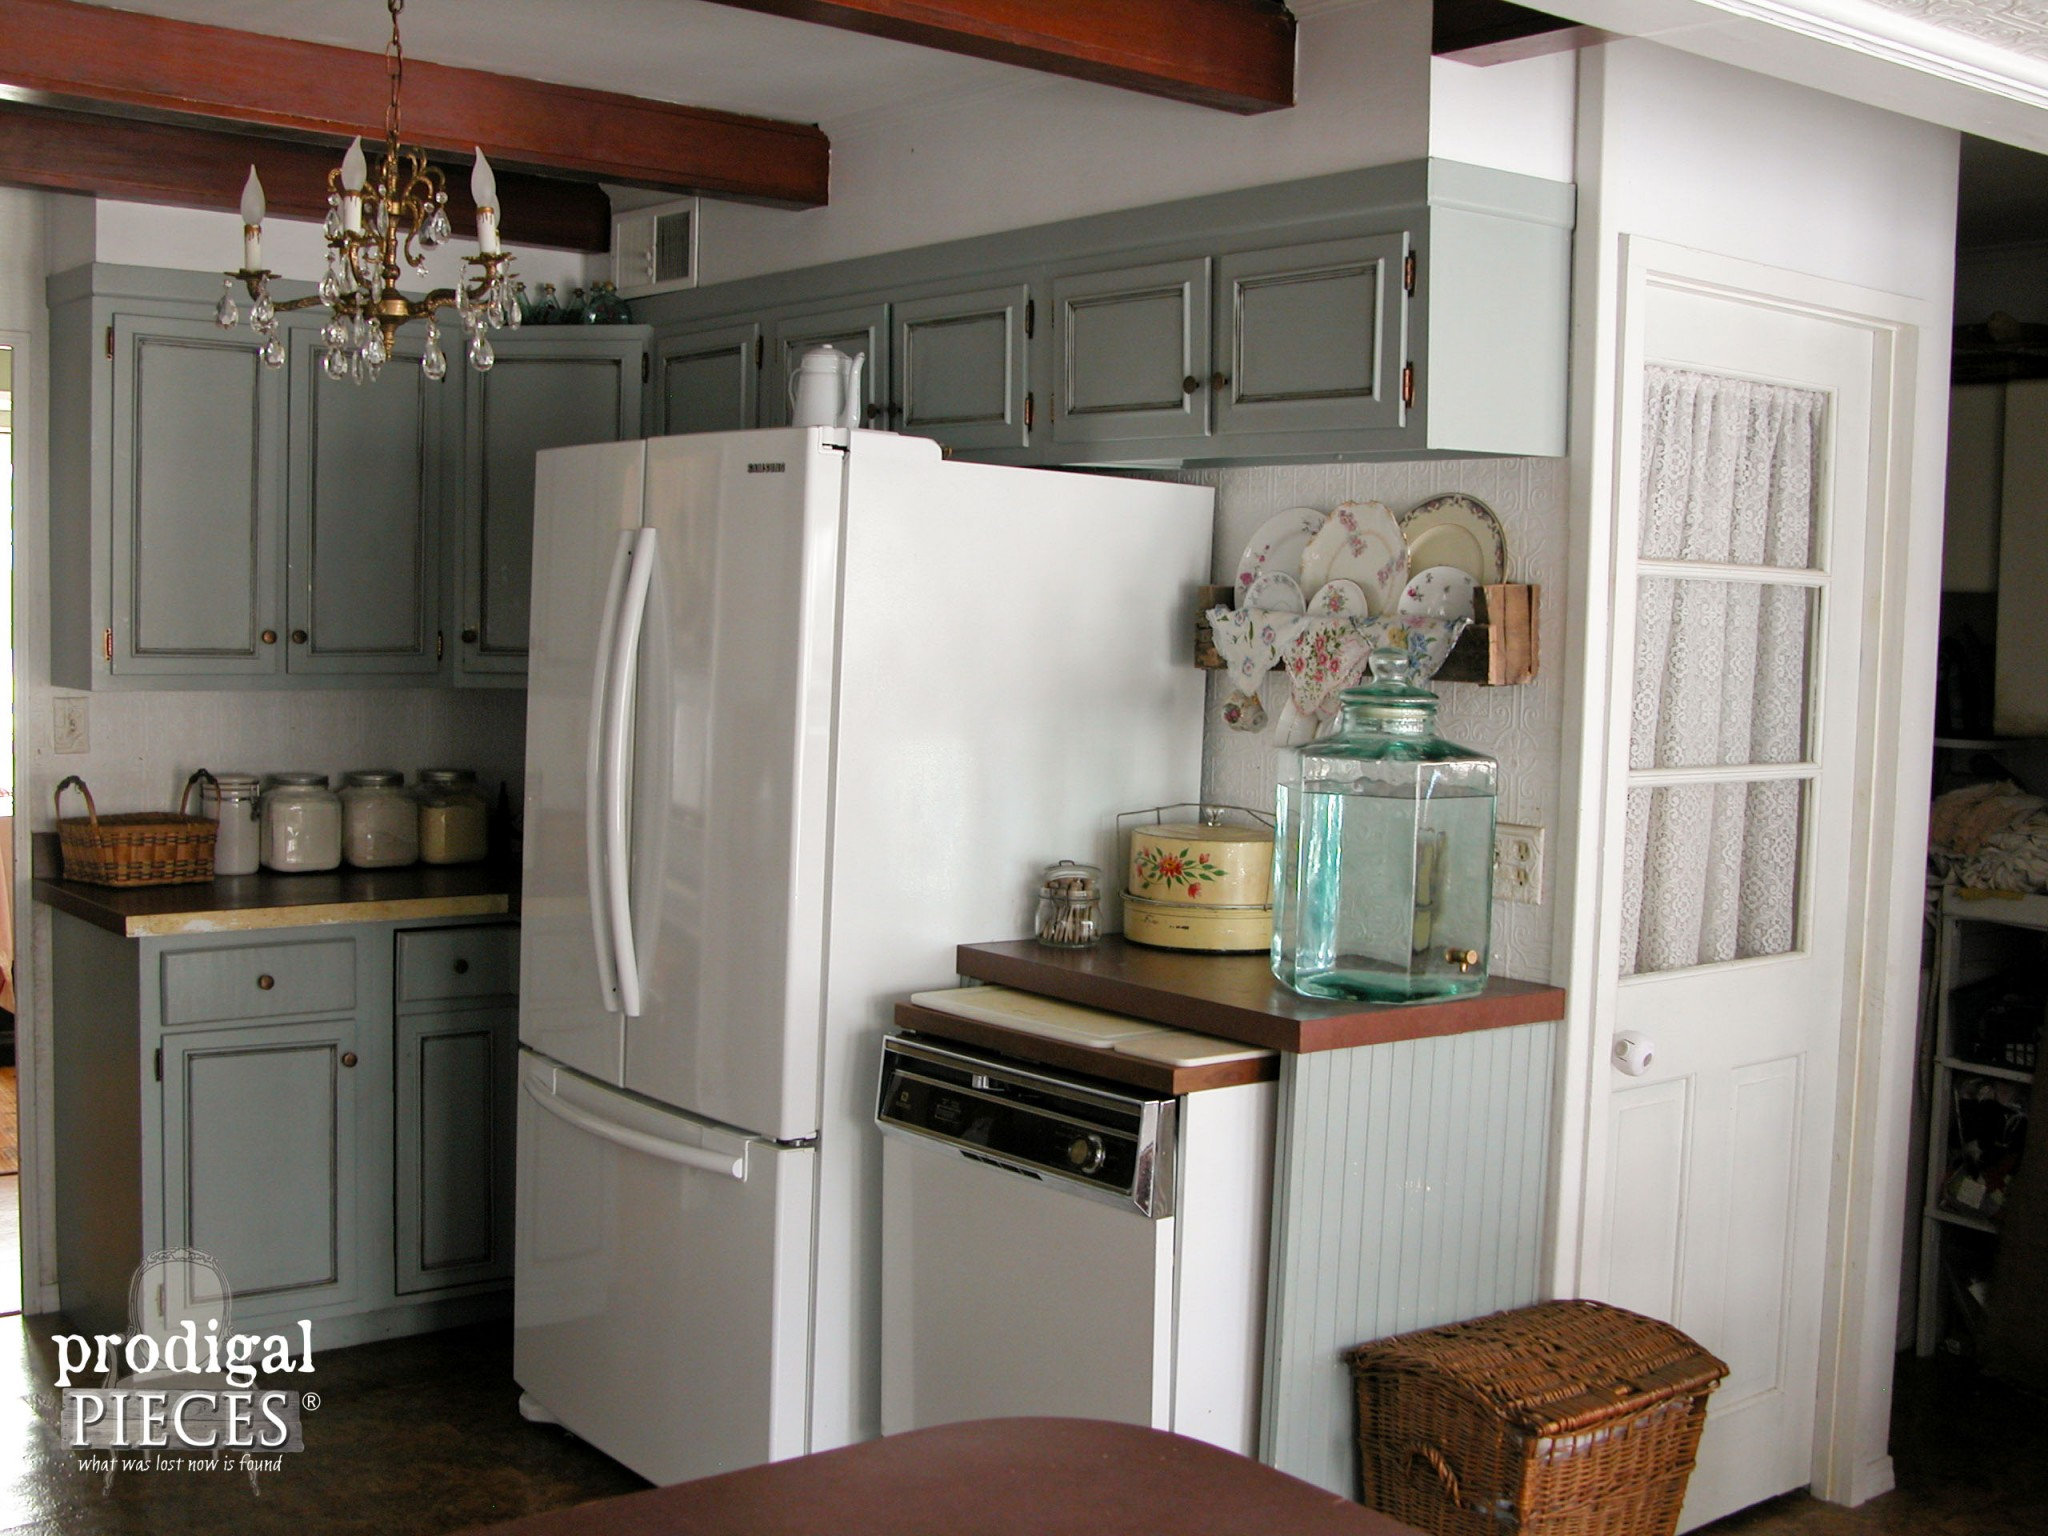 Blue Gray Cabinets in Kitchen Remodel by Prodigal Pieces | www.prodigalpieces.com